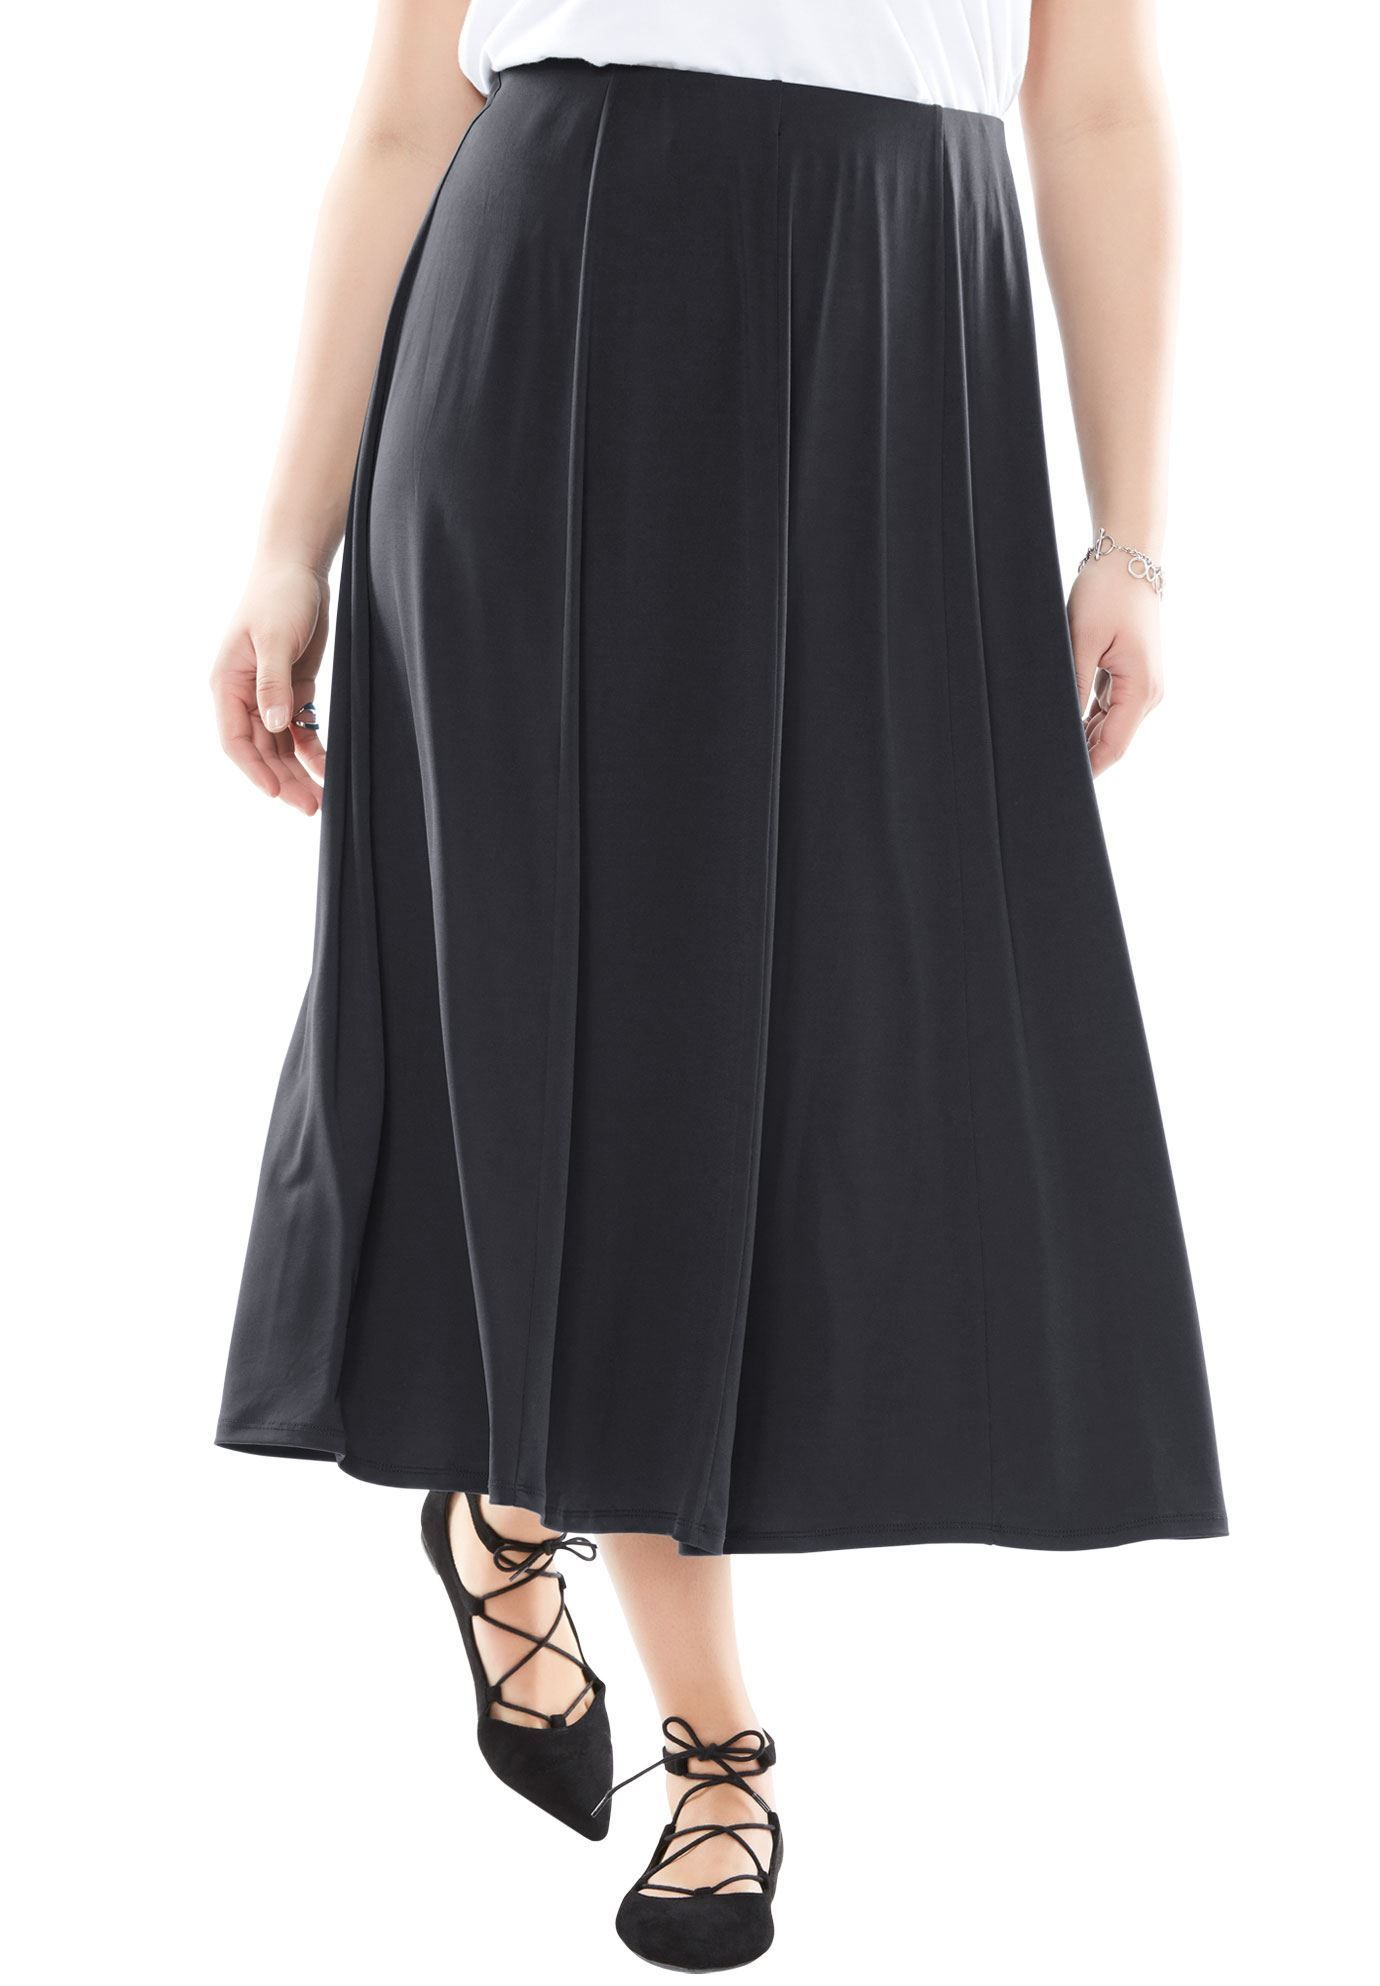 31eaee6b5 A-line skirt - Women's Plus Size Clothing | Products | A line skirts ...